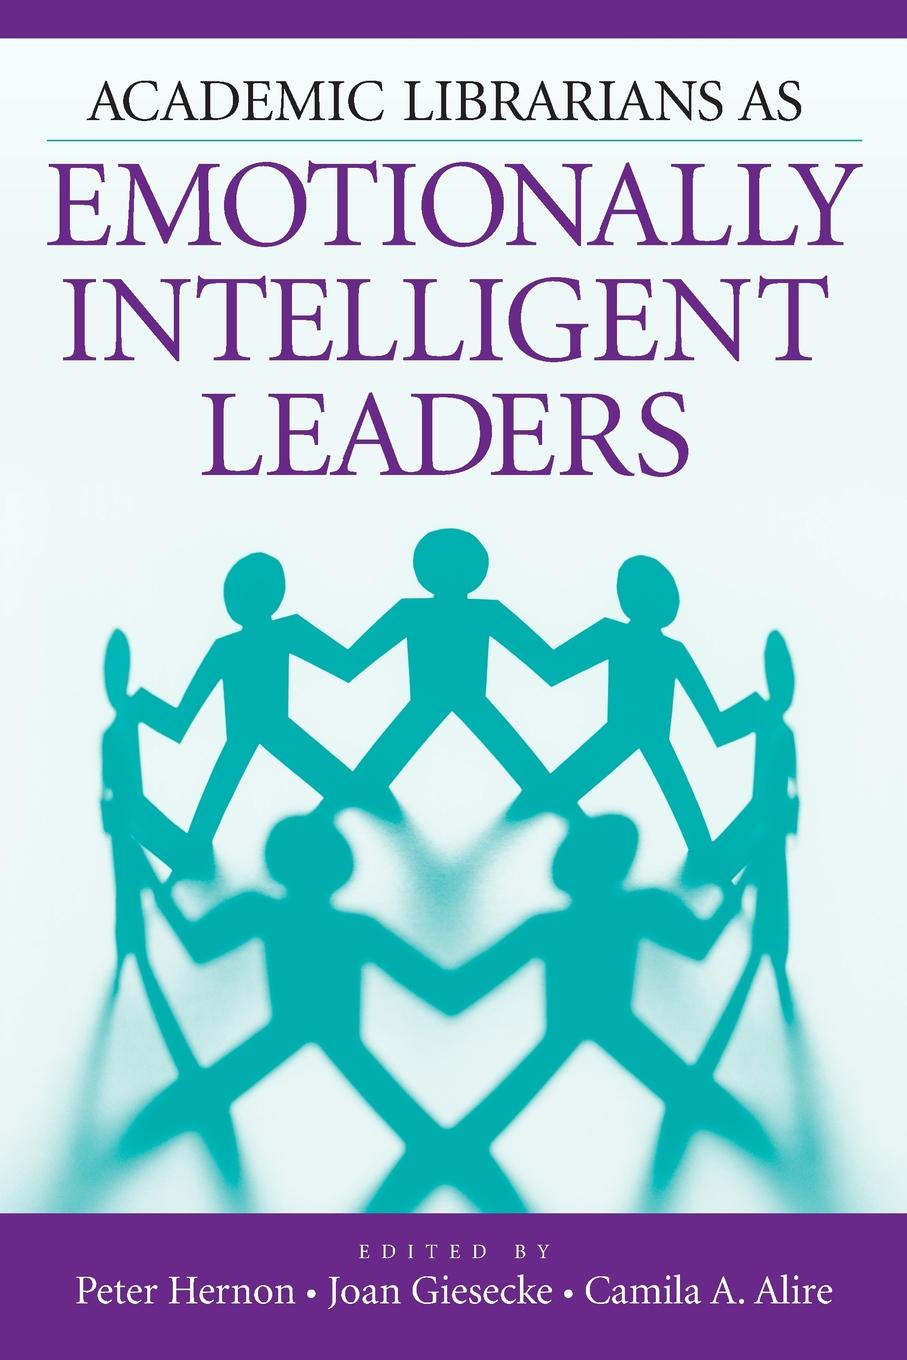 Peter Hernon, Joan Giesecke, Camila Alire Academic Librarians as Emotionally Intelligent Leaders paige haber curran emotionally intelligent leadership a guide for students